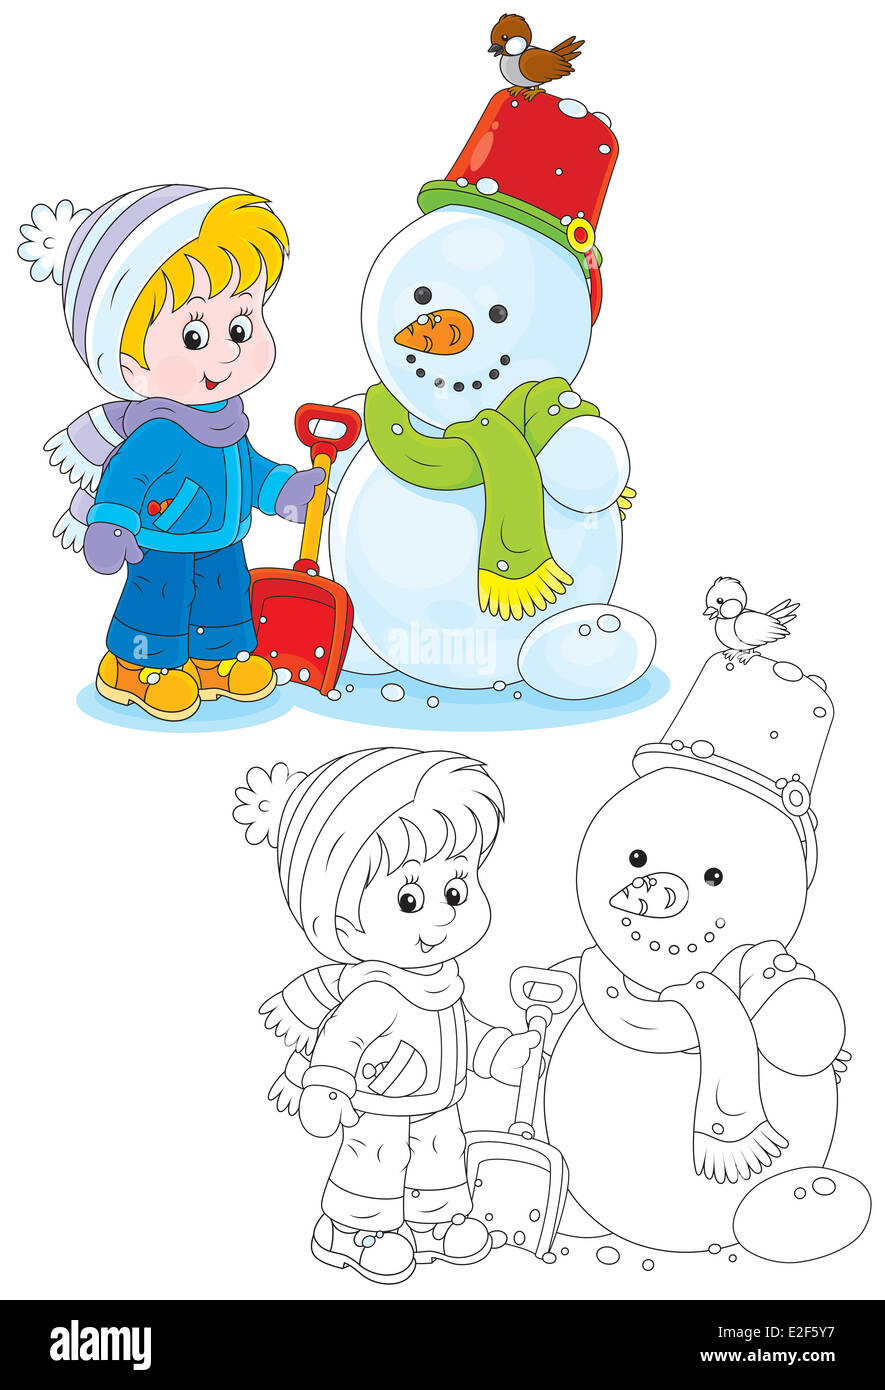 Child and snowman - Stock Image